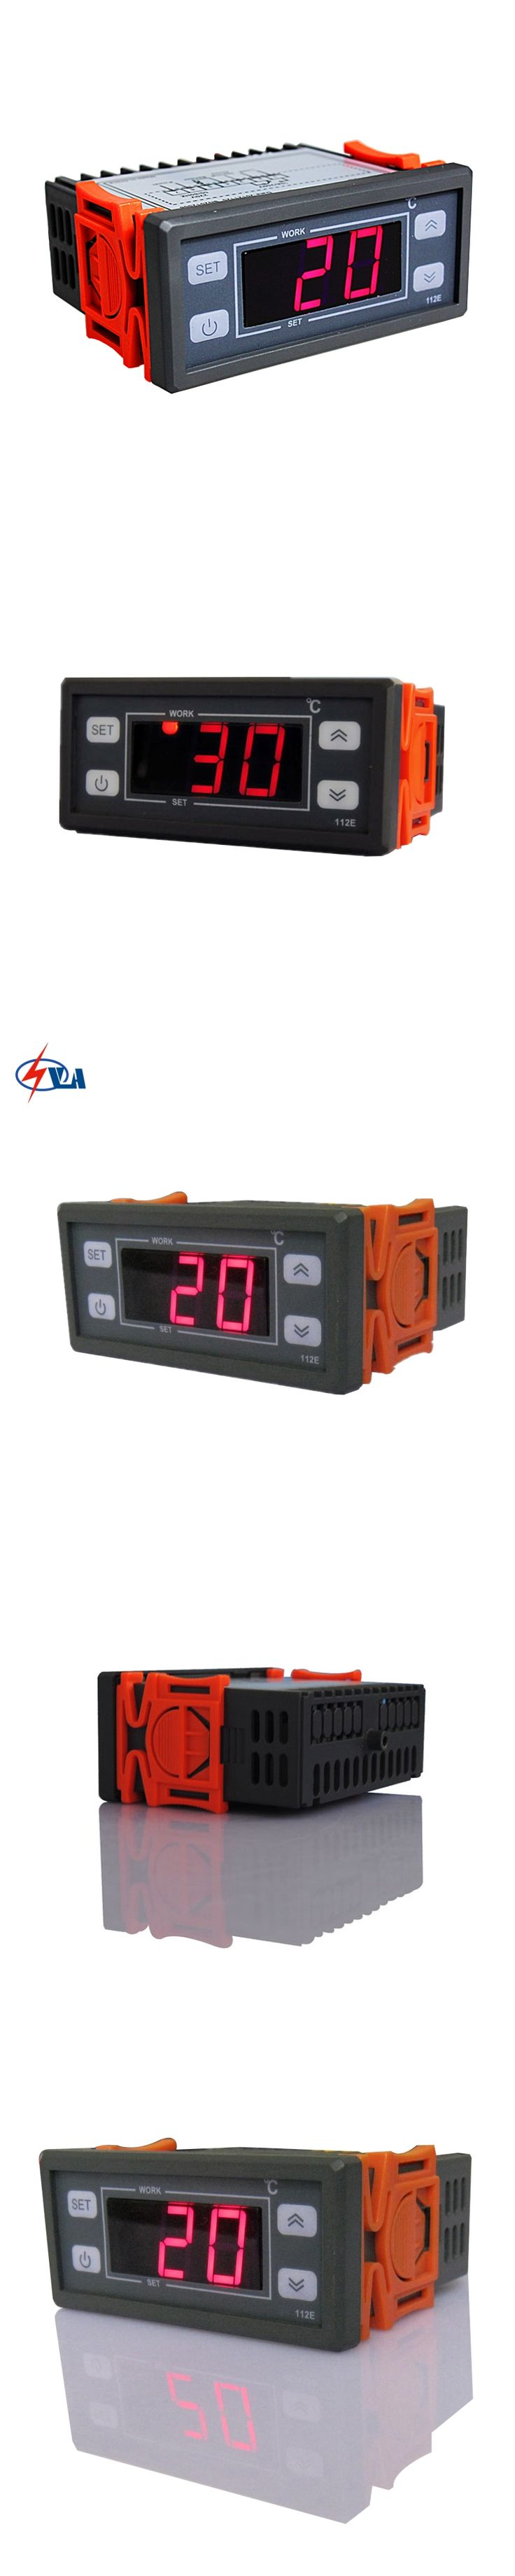 NV-112E Refrigeration/heat Digital Temperature and humidity Controller 230V 10A